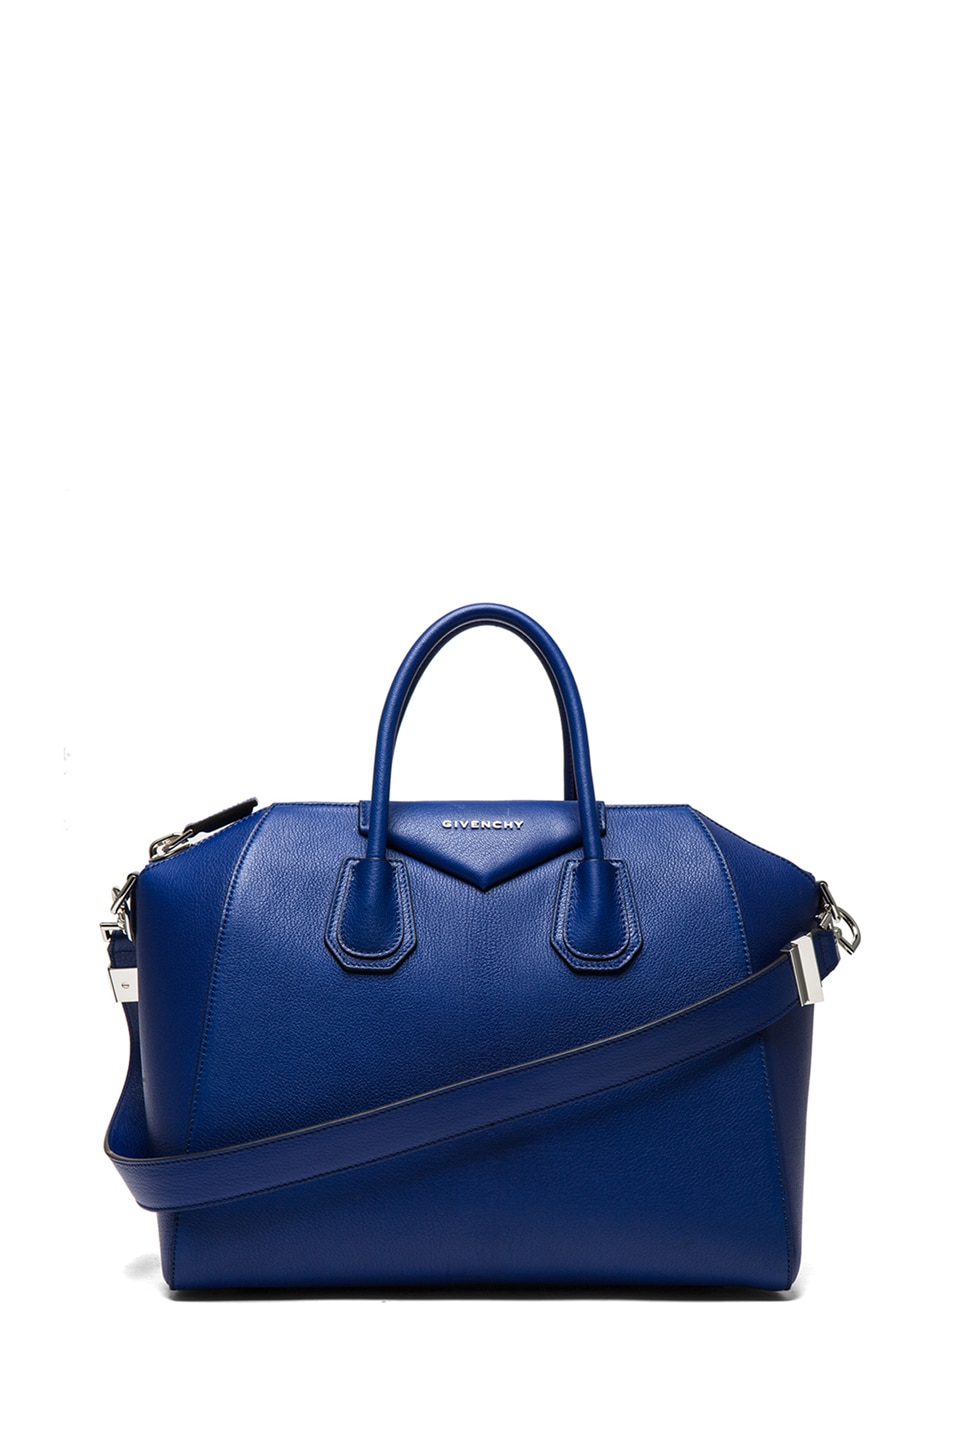 Image 1 of GIVENCHY Medium Antigona in Blue